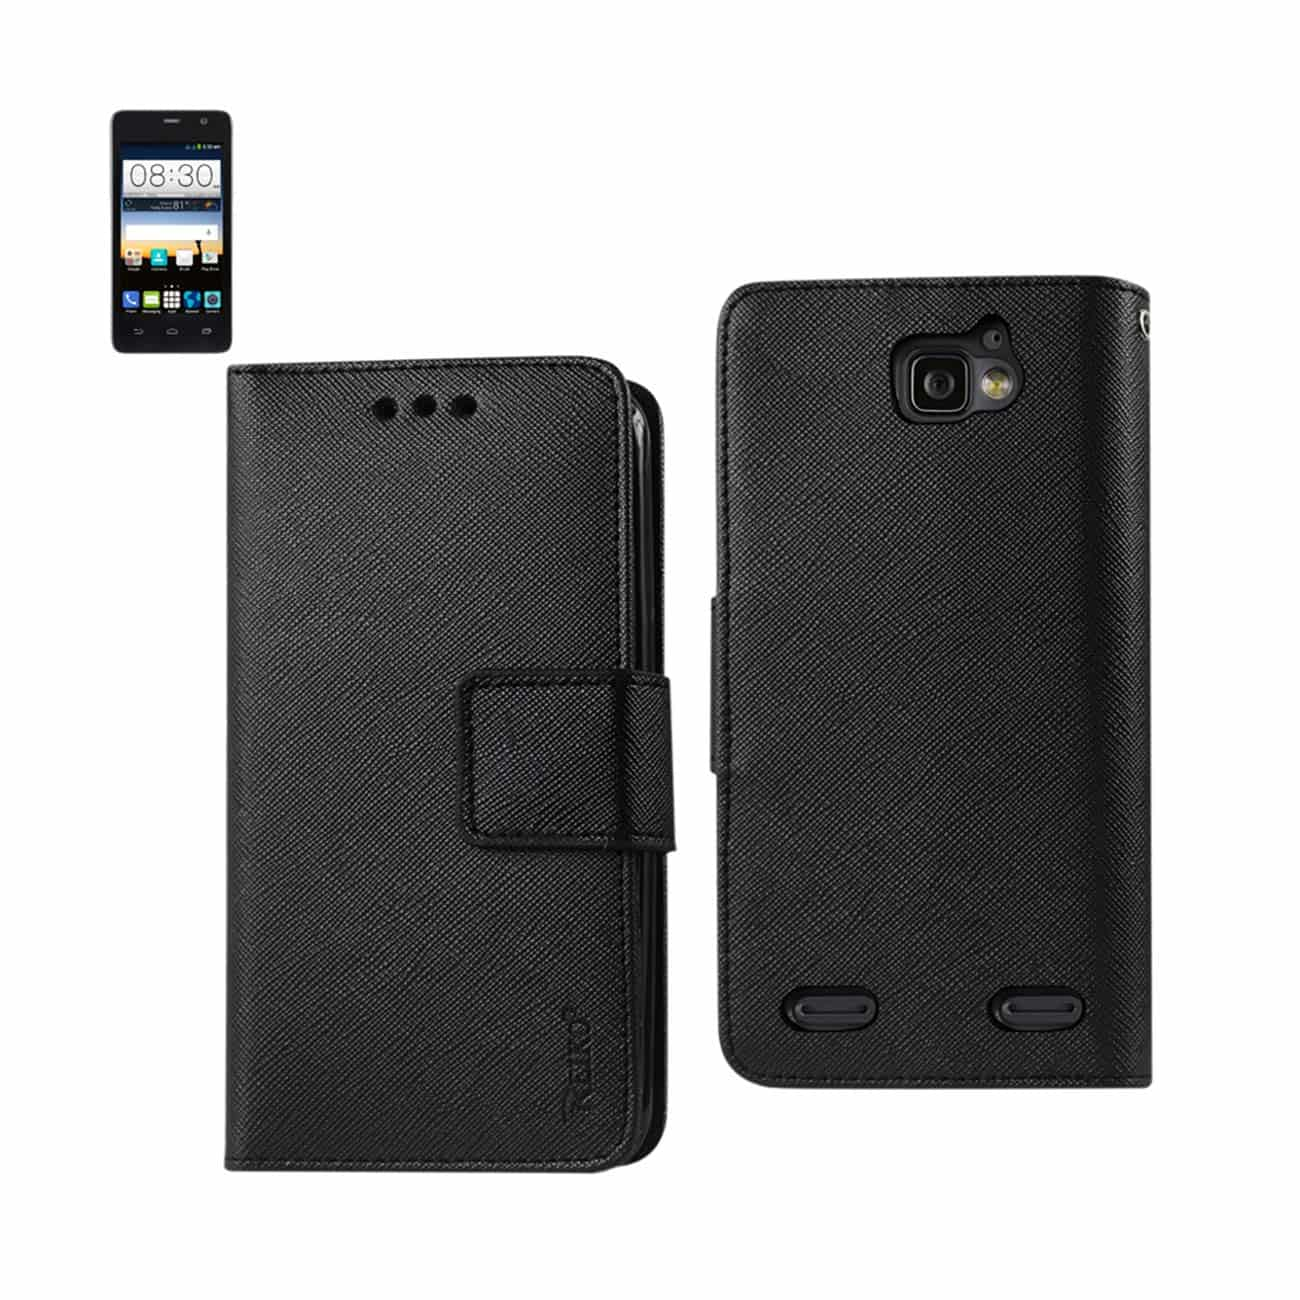 ZTE SONATA 2 3-IN-1 WALLET CASE IN BLACK